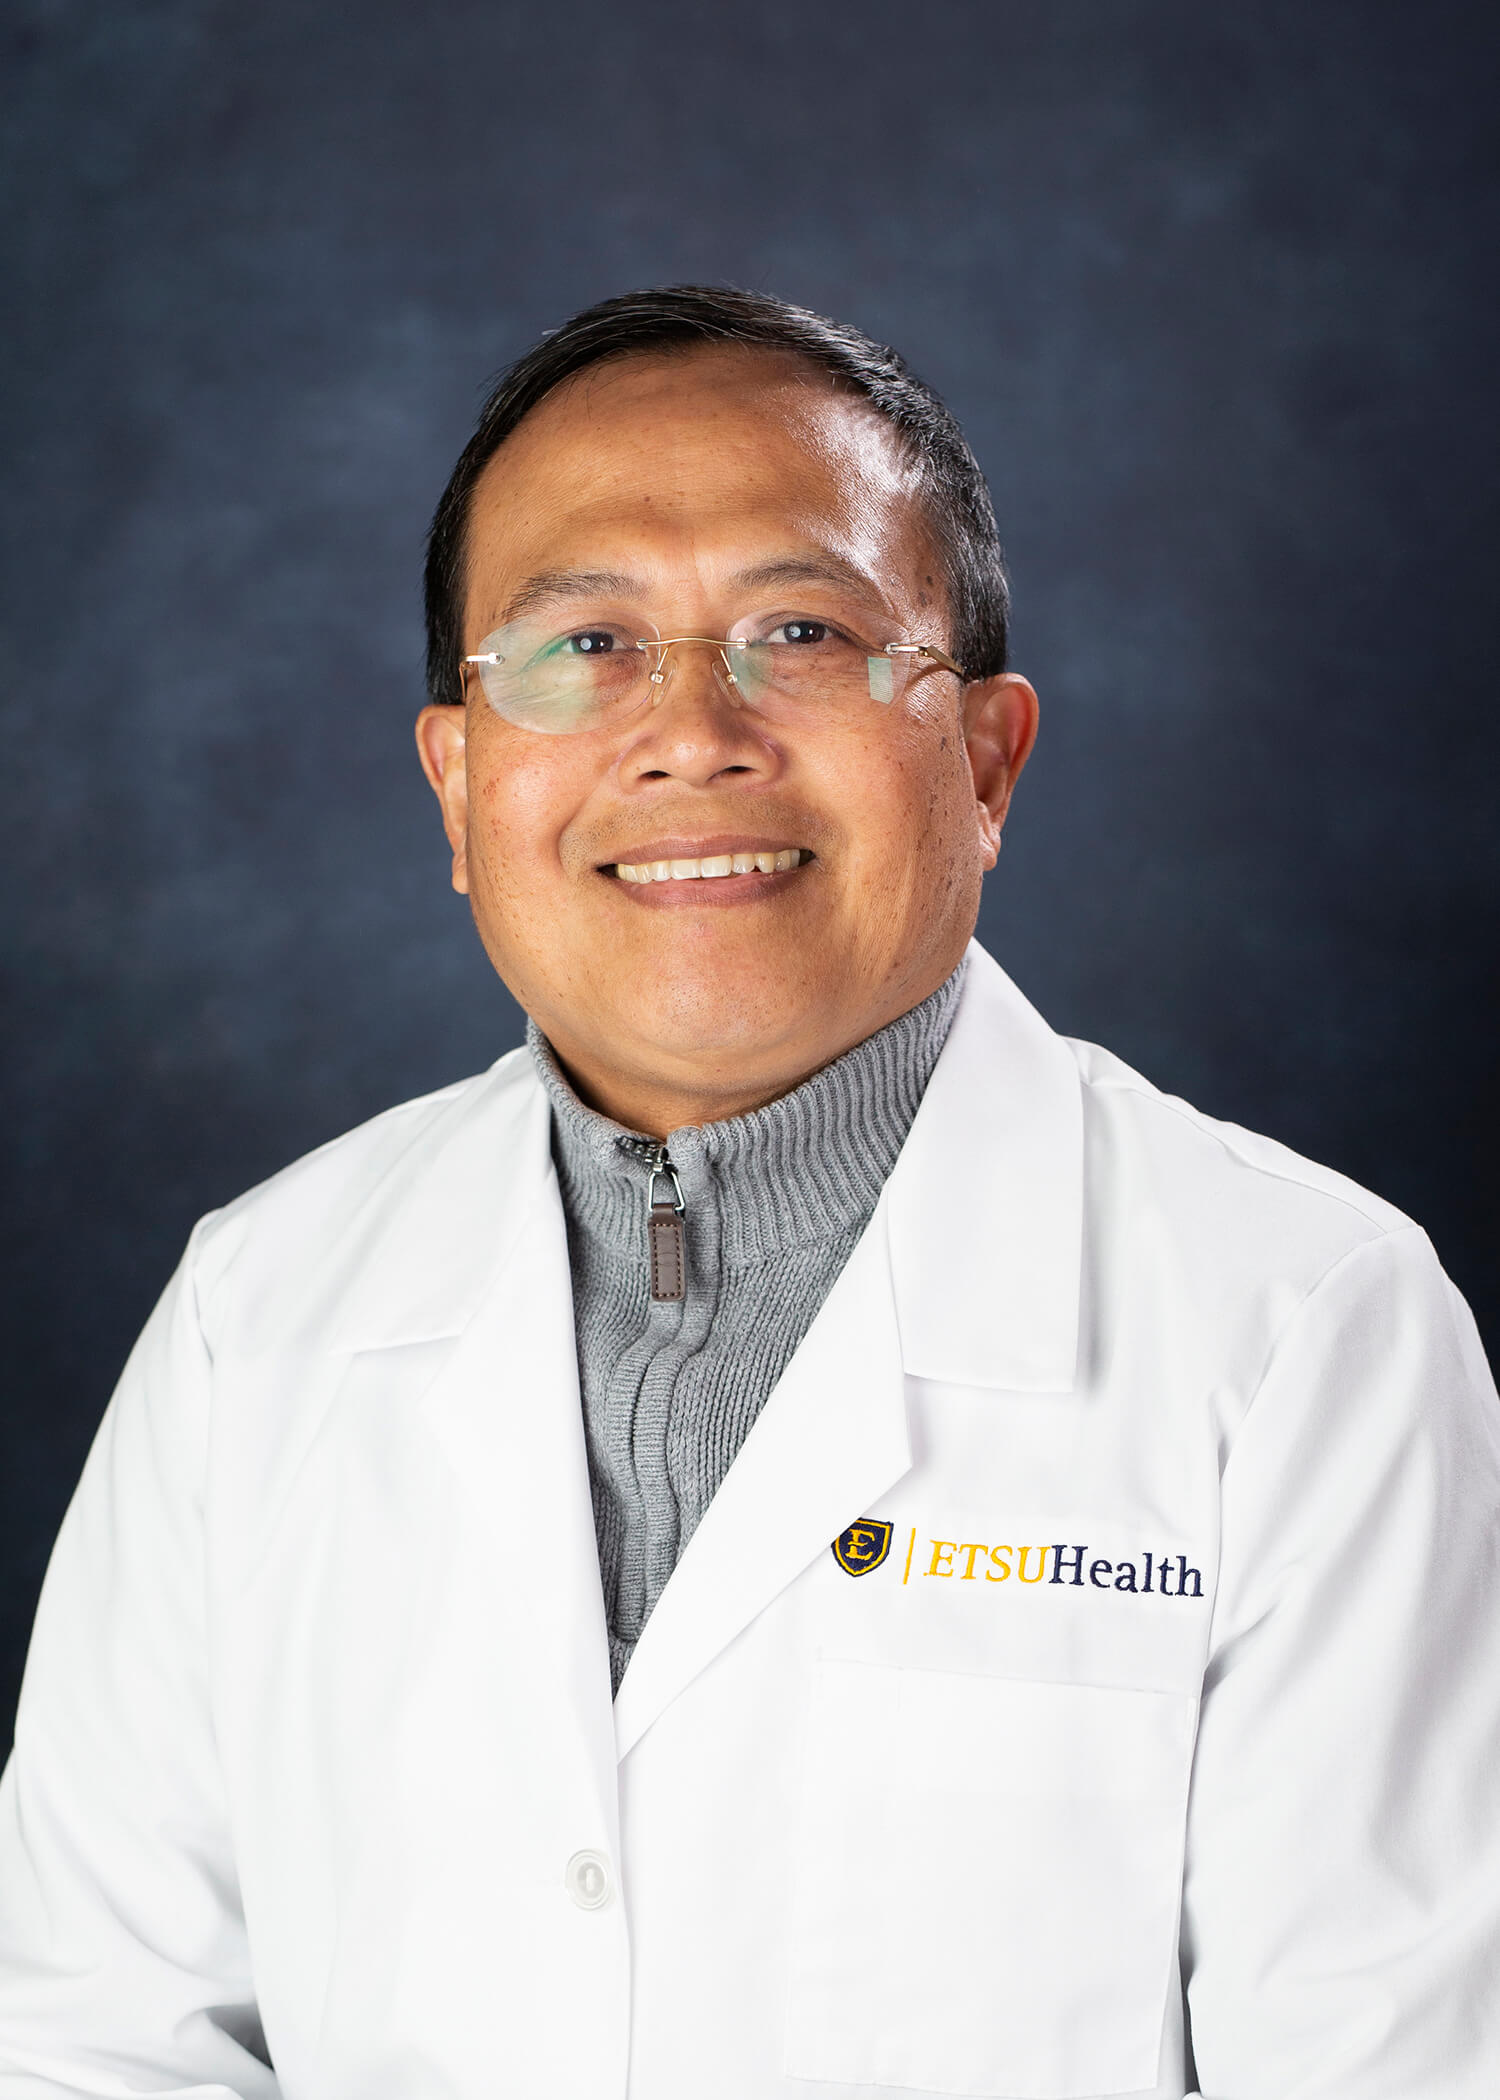 Photo of Demetrio Macariola, M.D.